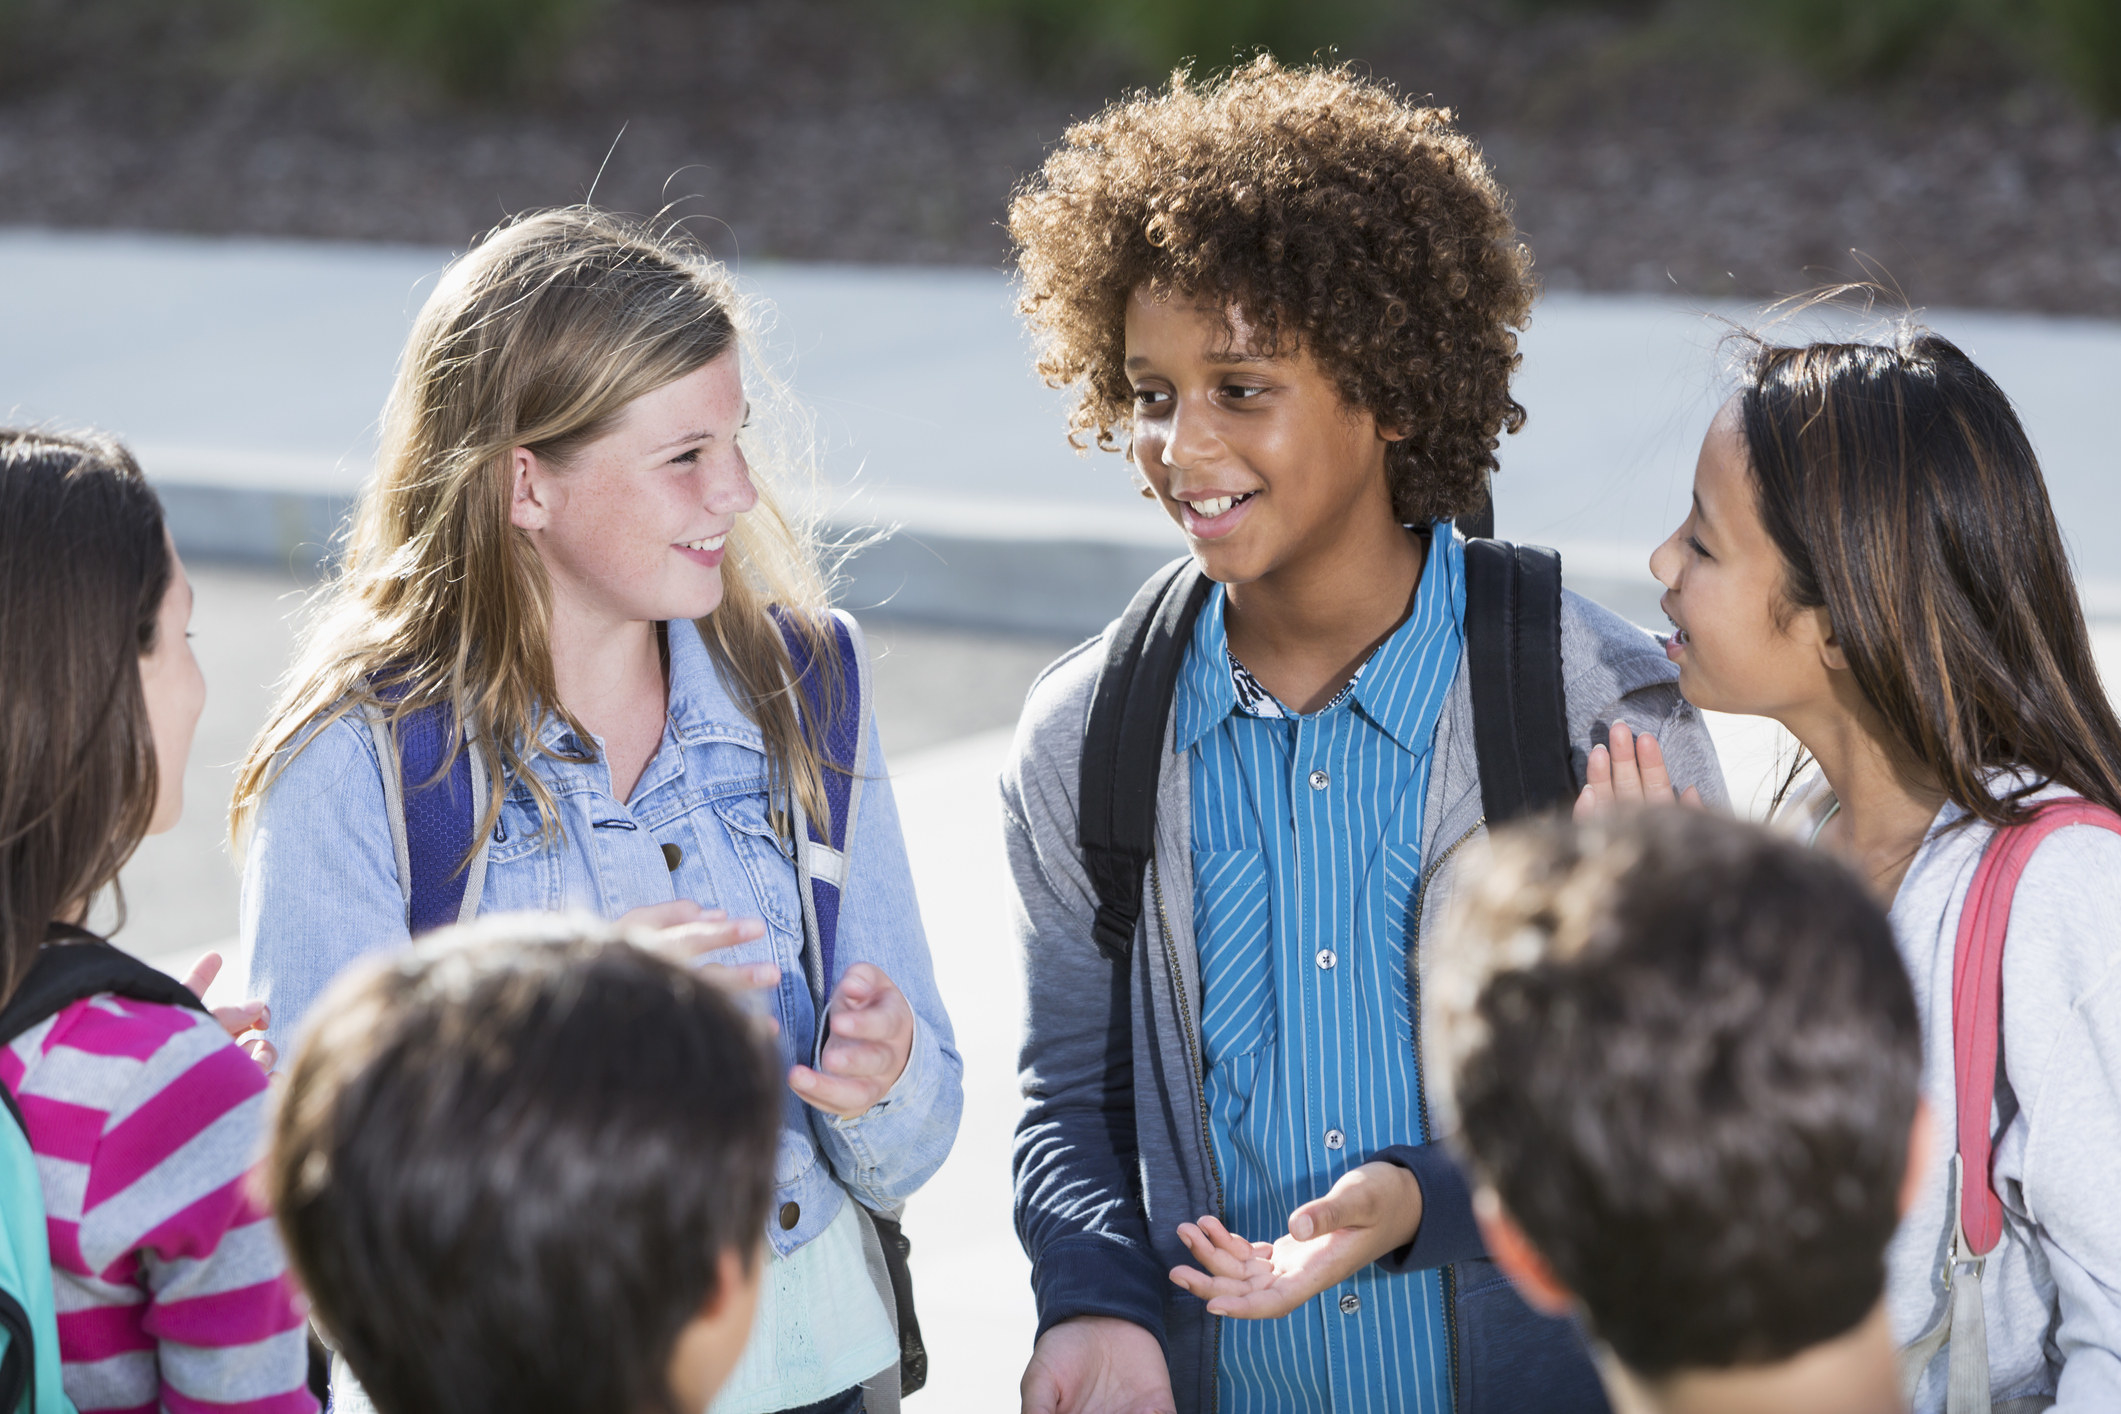 Students standing in a circle talking outdoors